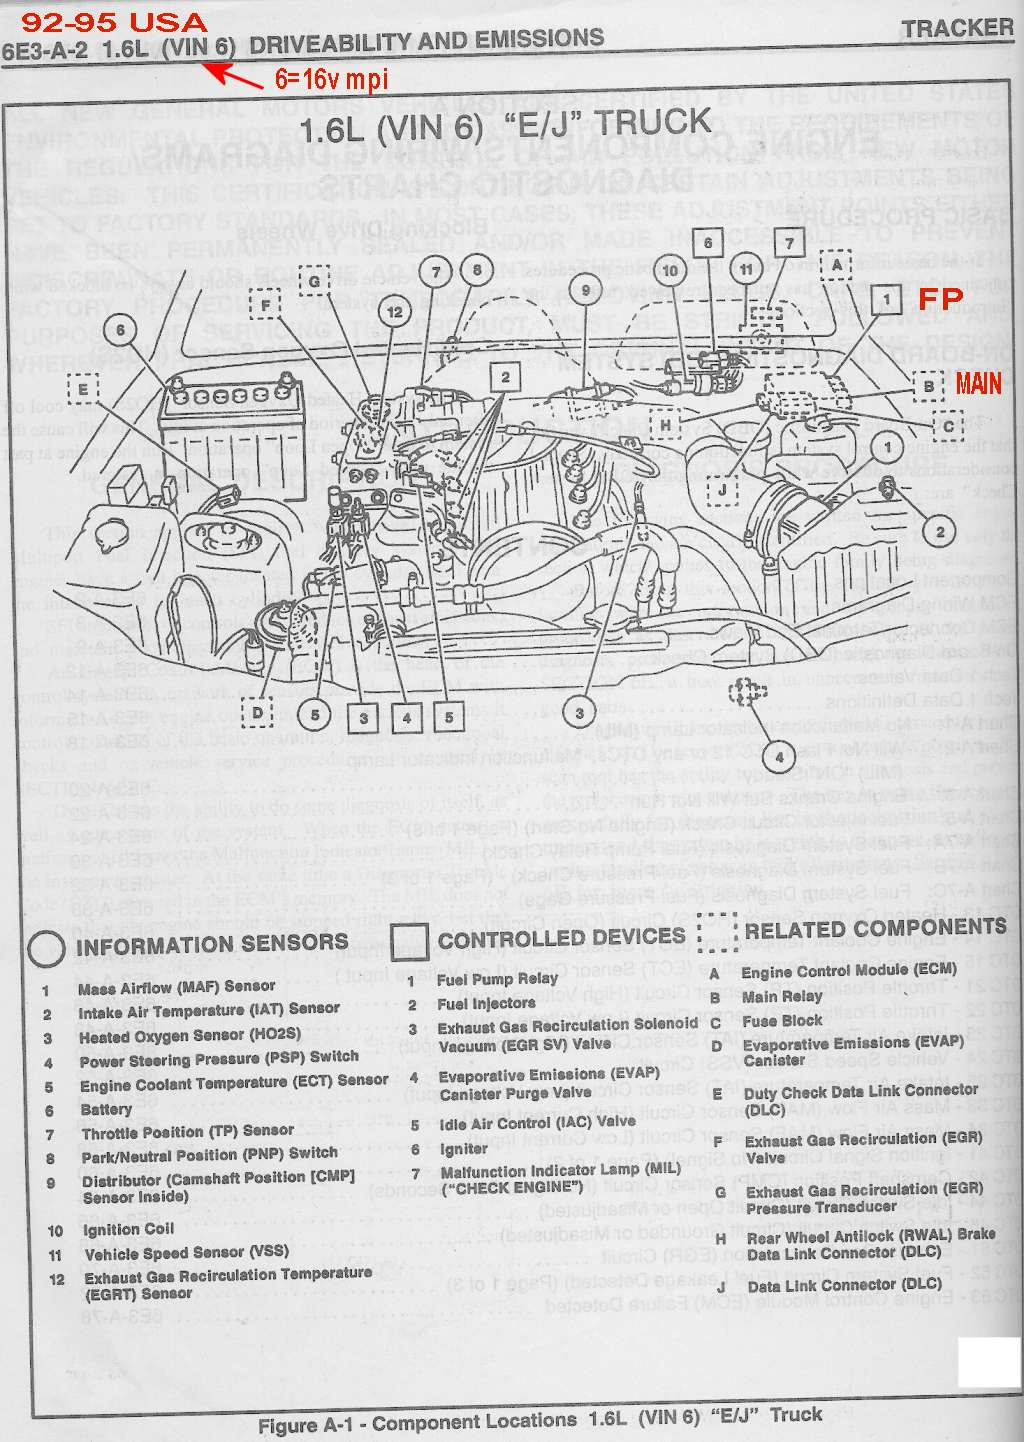 Schematics To Run Engine Electronic Ignition Wiring Diagram 95 Bay Component Locations Vin 6 Mpi Critical Motor Running